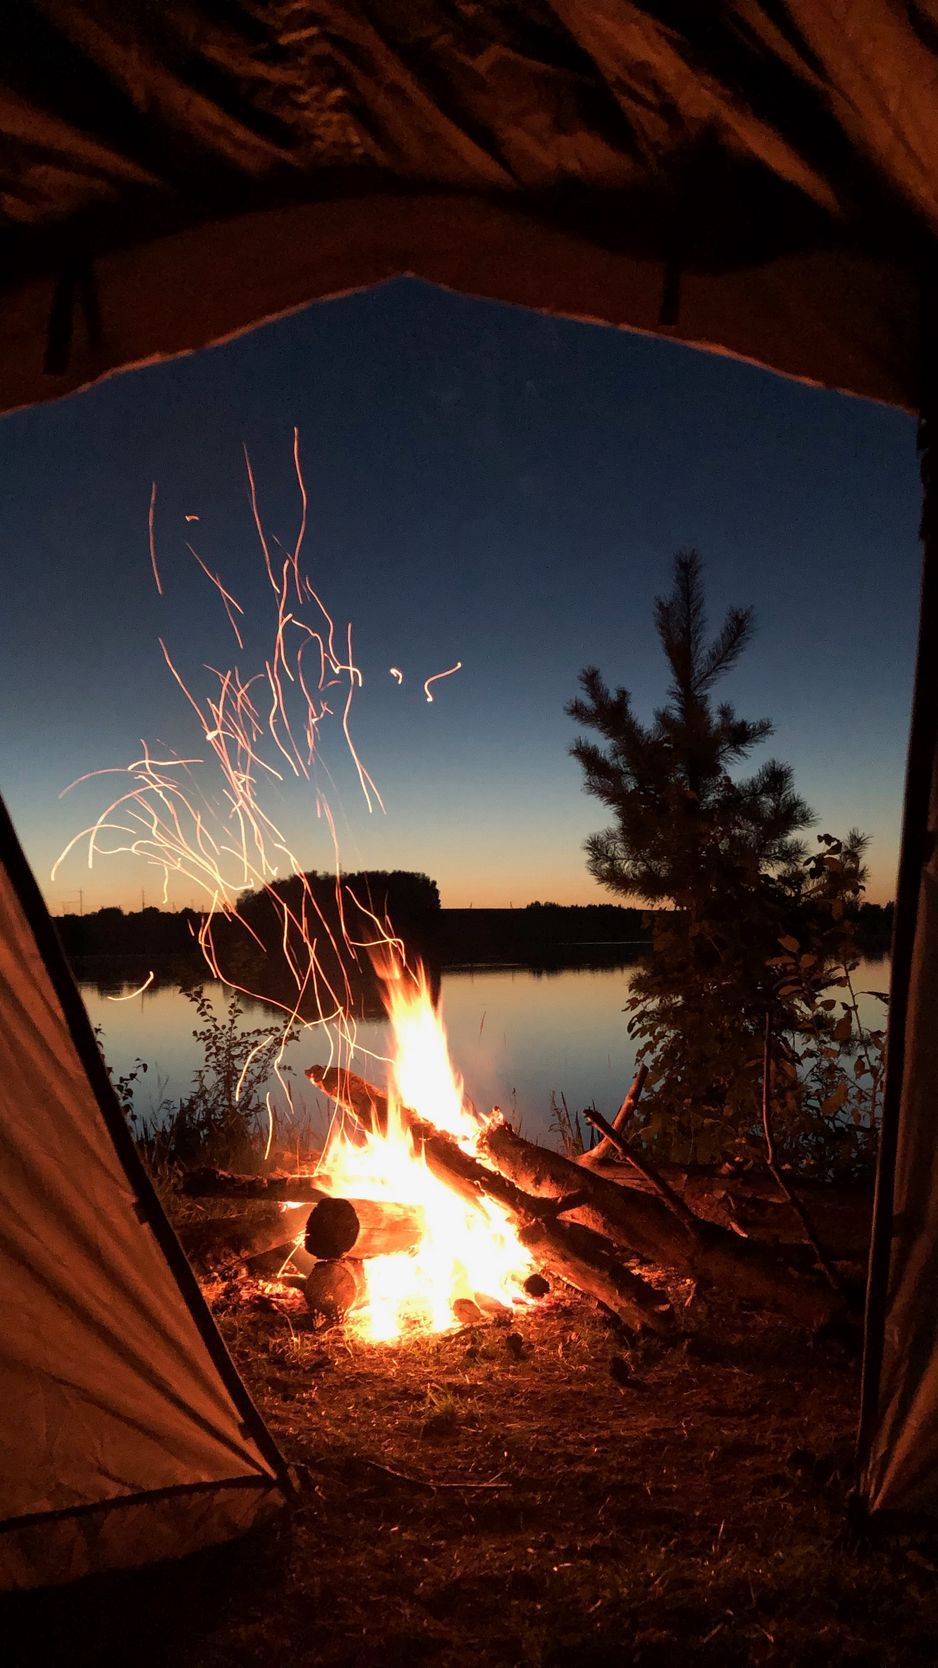 Camping 4K Wallpapers - Top Free Camping 4K Backgrounds ...